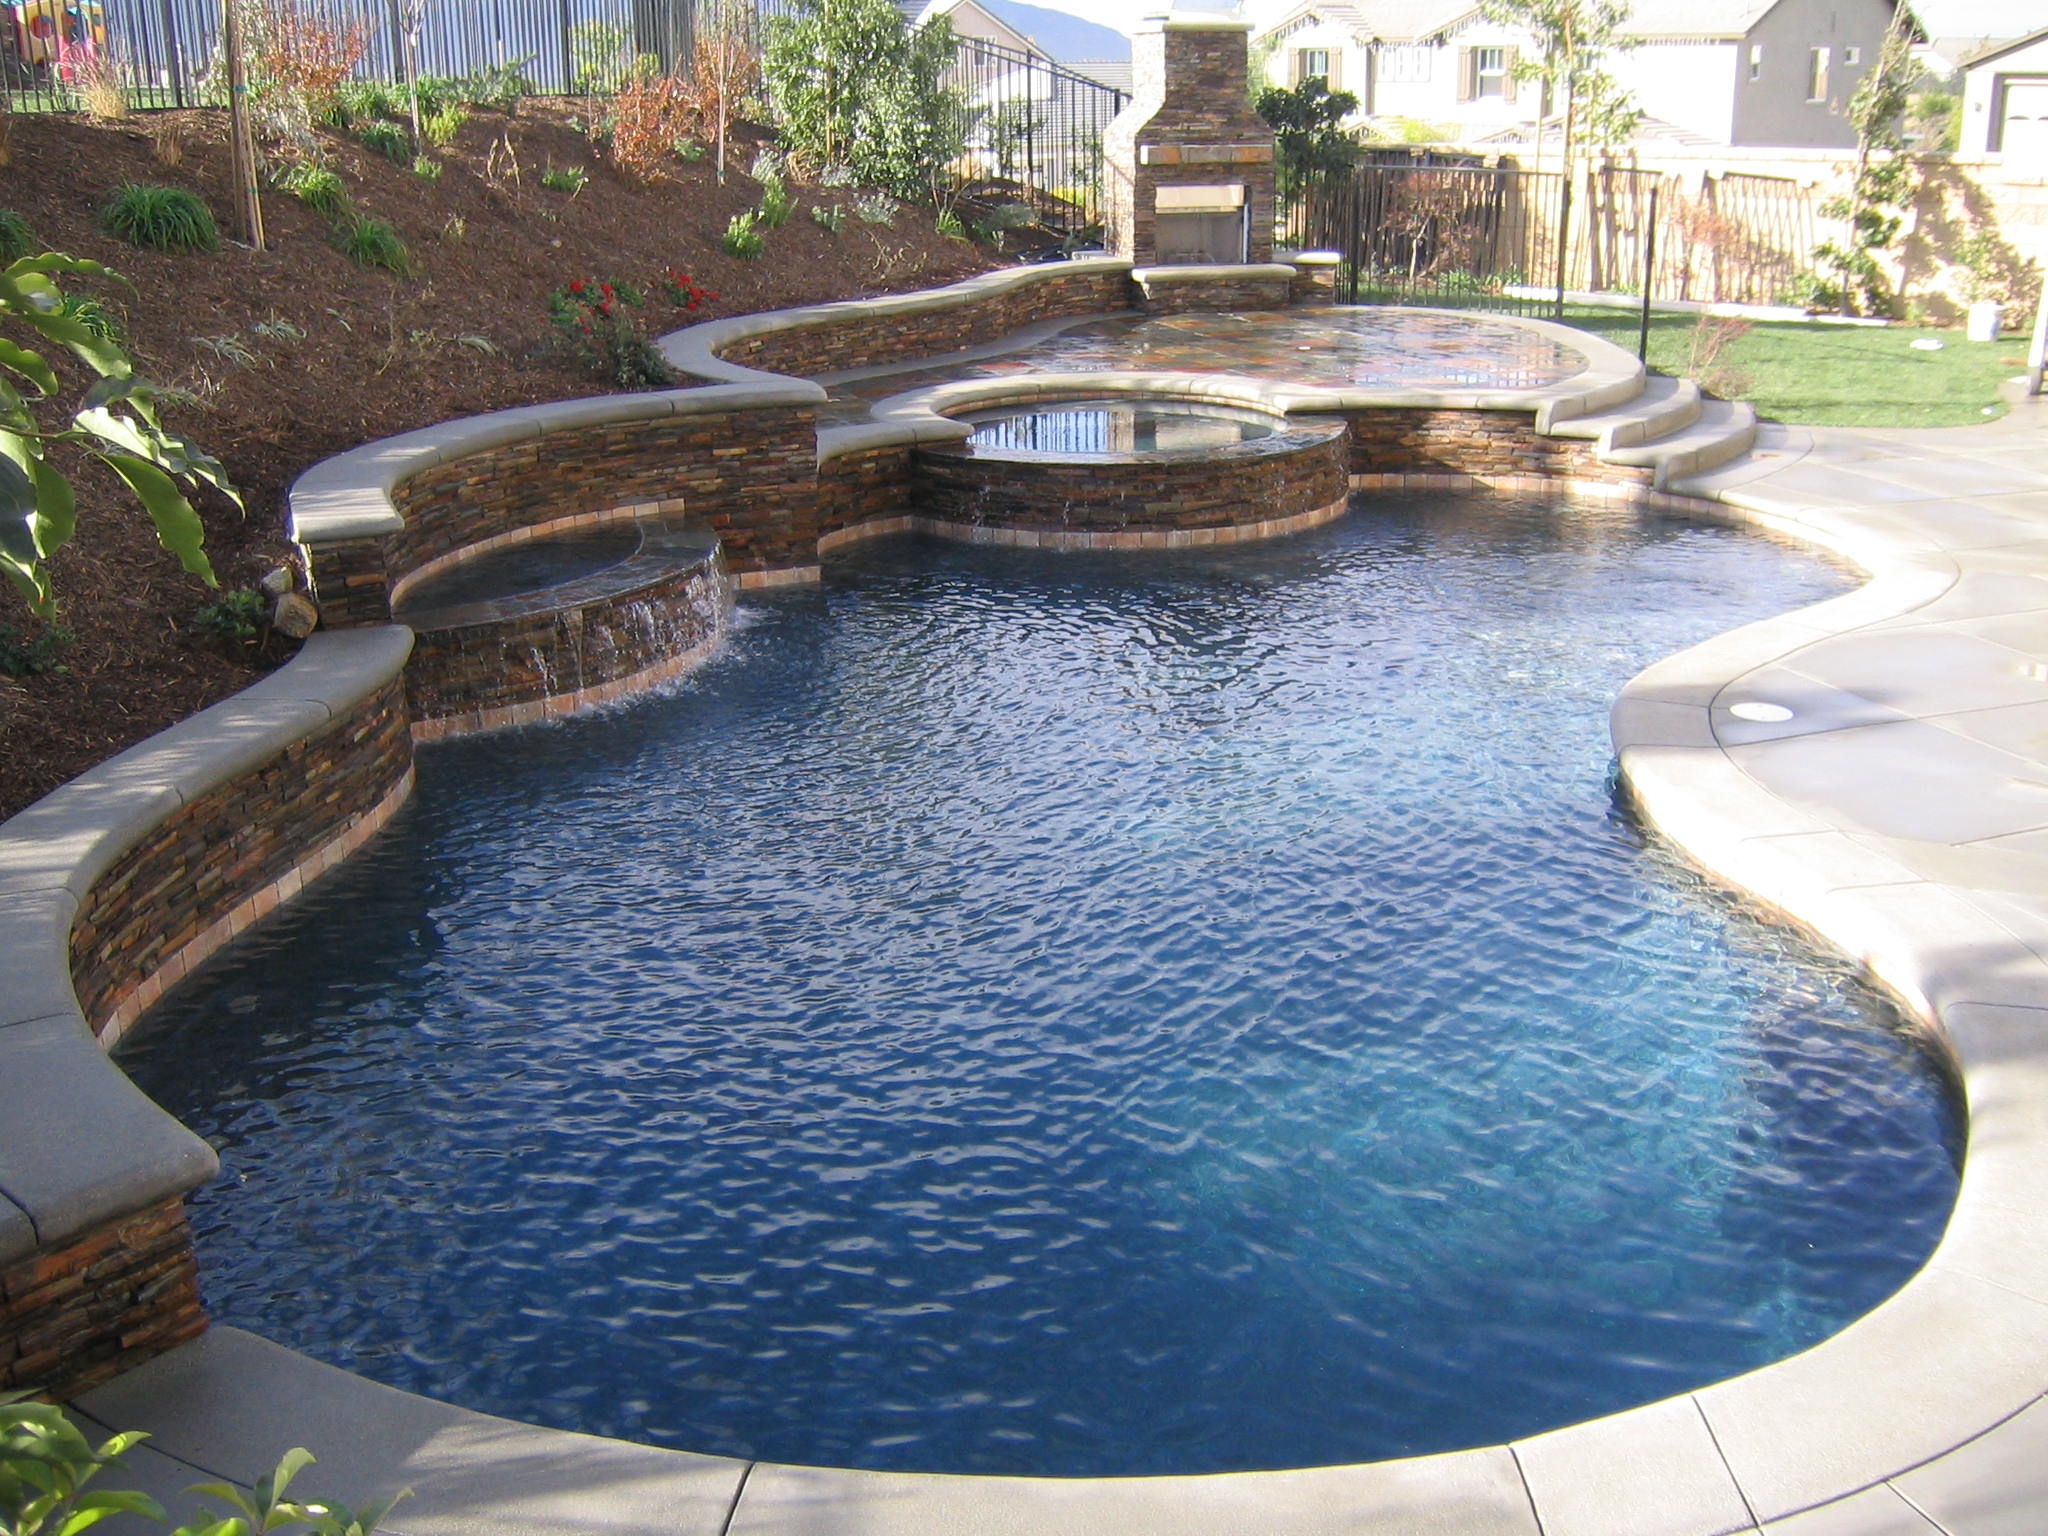 Really-cool-designs-ideas-of-small-backyard-pools-with-simple-garden-and-light-brown-ceramic-with-stone-tile-floor-with-rustic-fireplace-for-outdoor-lounge-space-decor